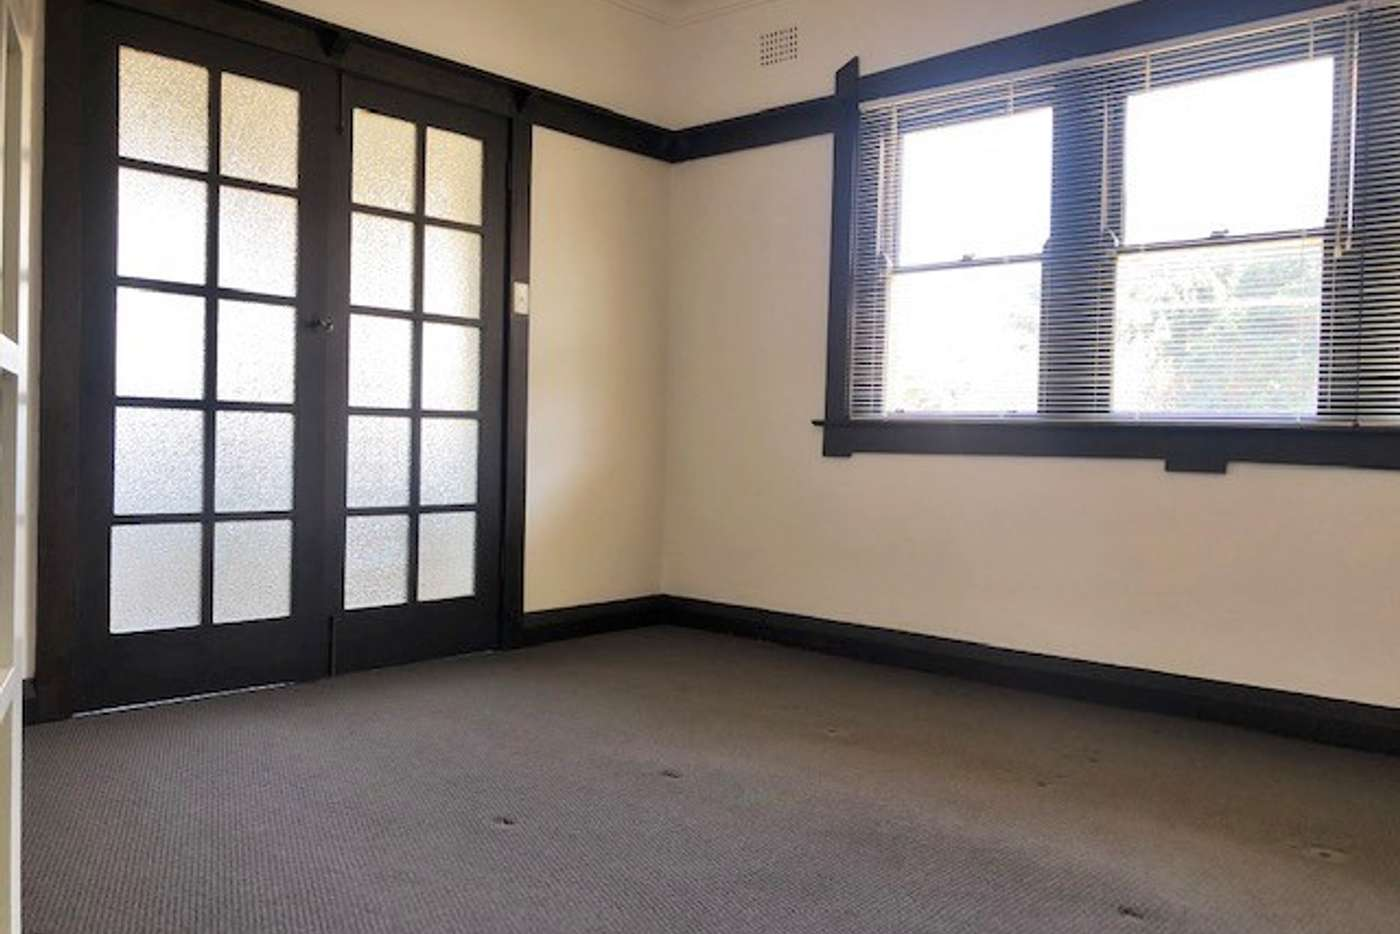 Main view of Homely apartment listing, 3/18 Day Avenue, Kensington NSW 2033